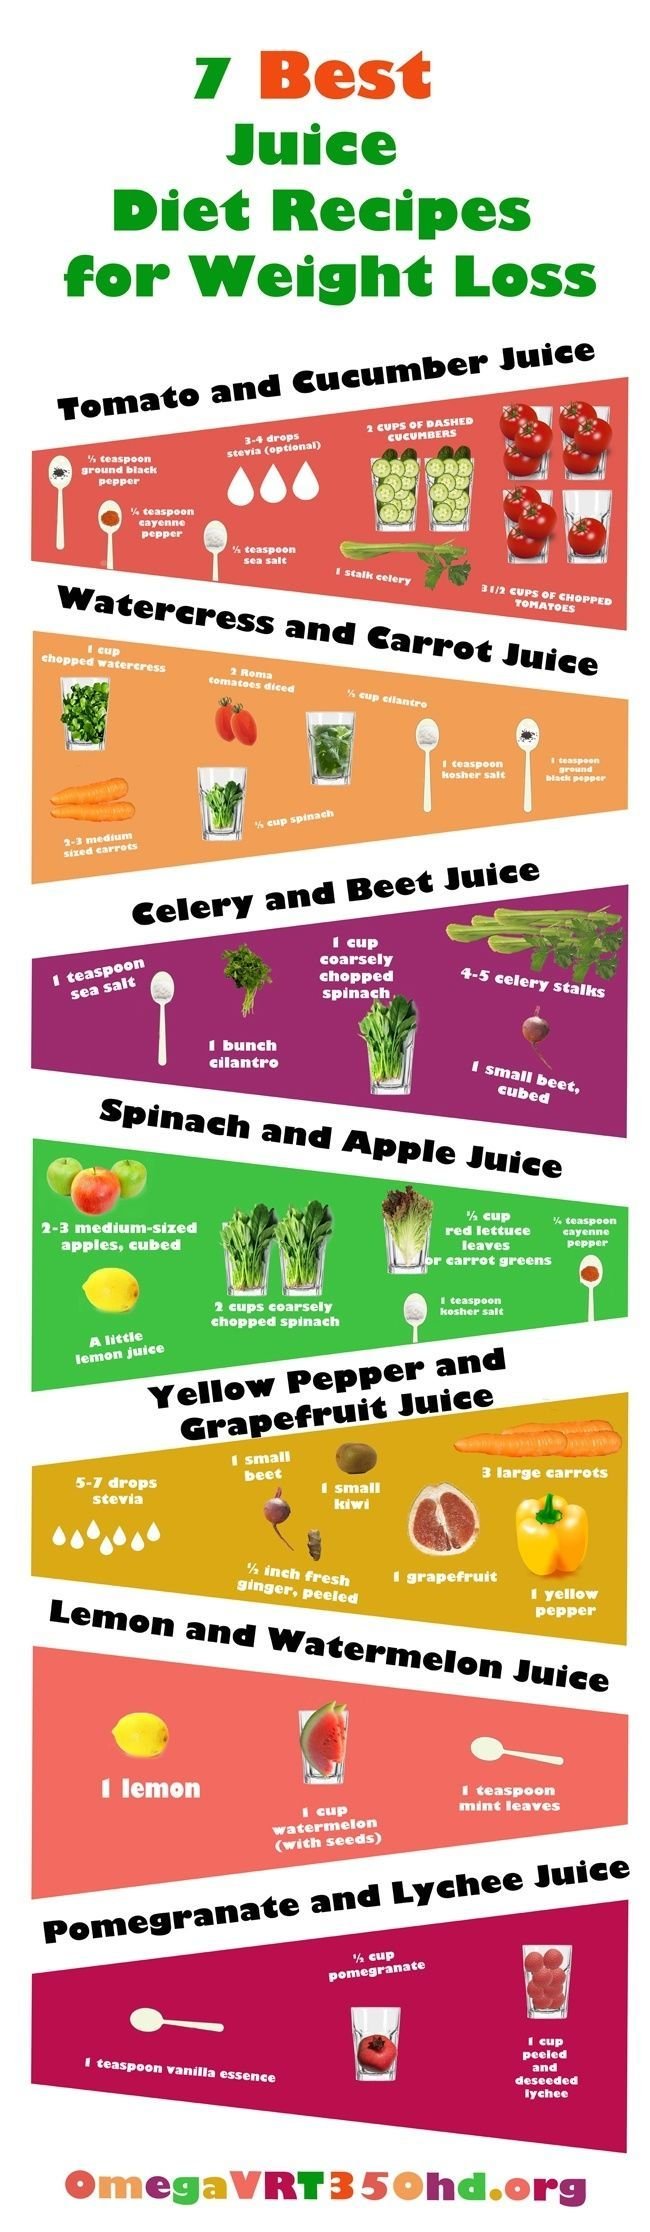 Best Juice for Weight Loss | Best Juice Diet Recipes For Weight Loss Pictures, Photos, and Images ...